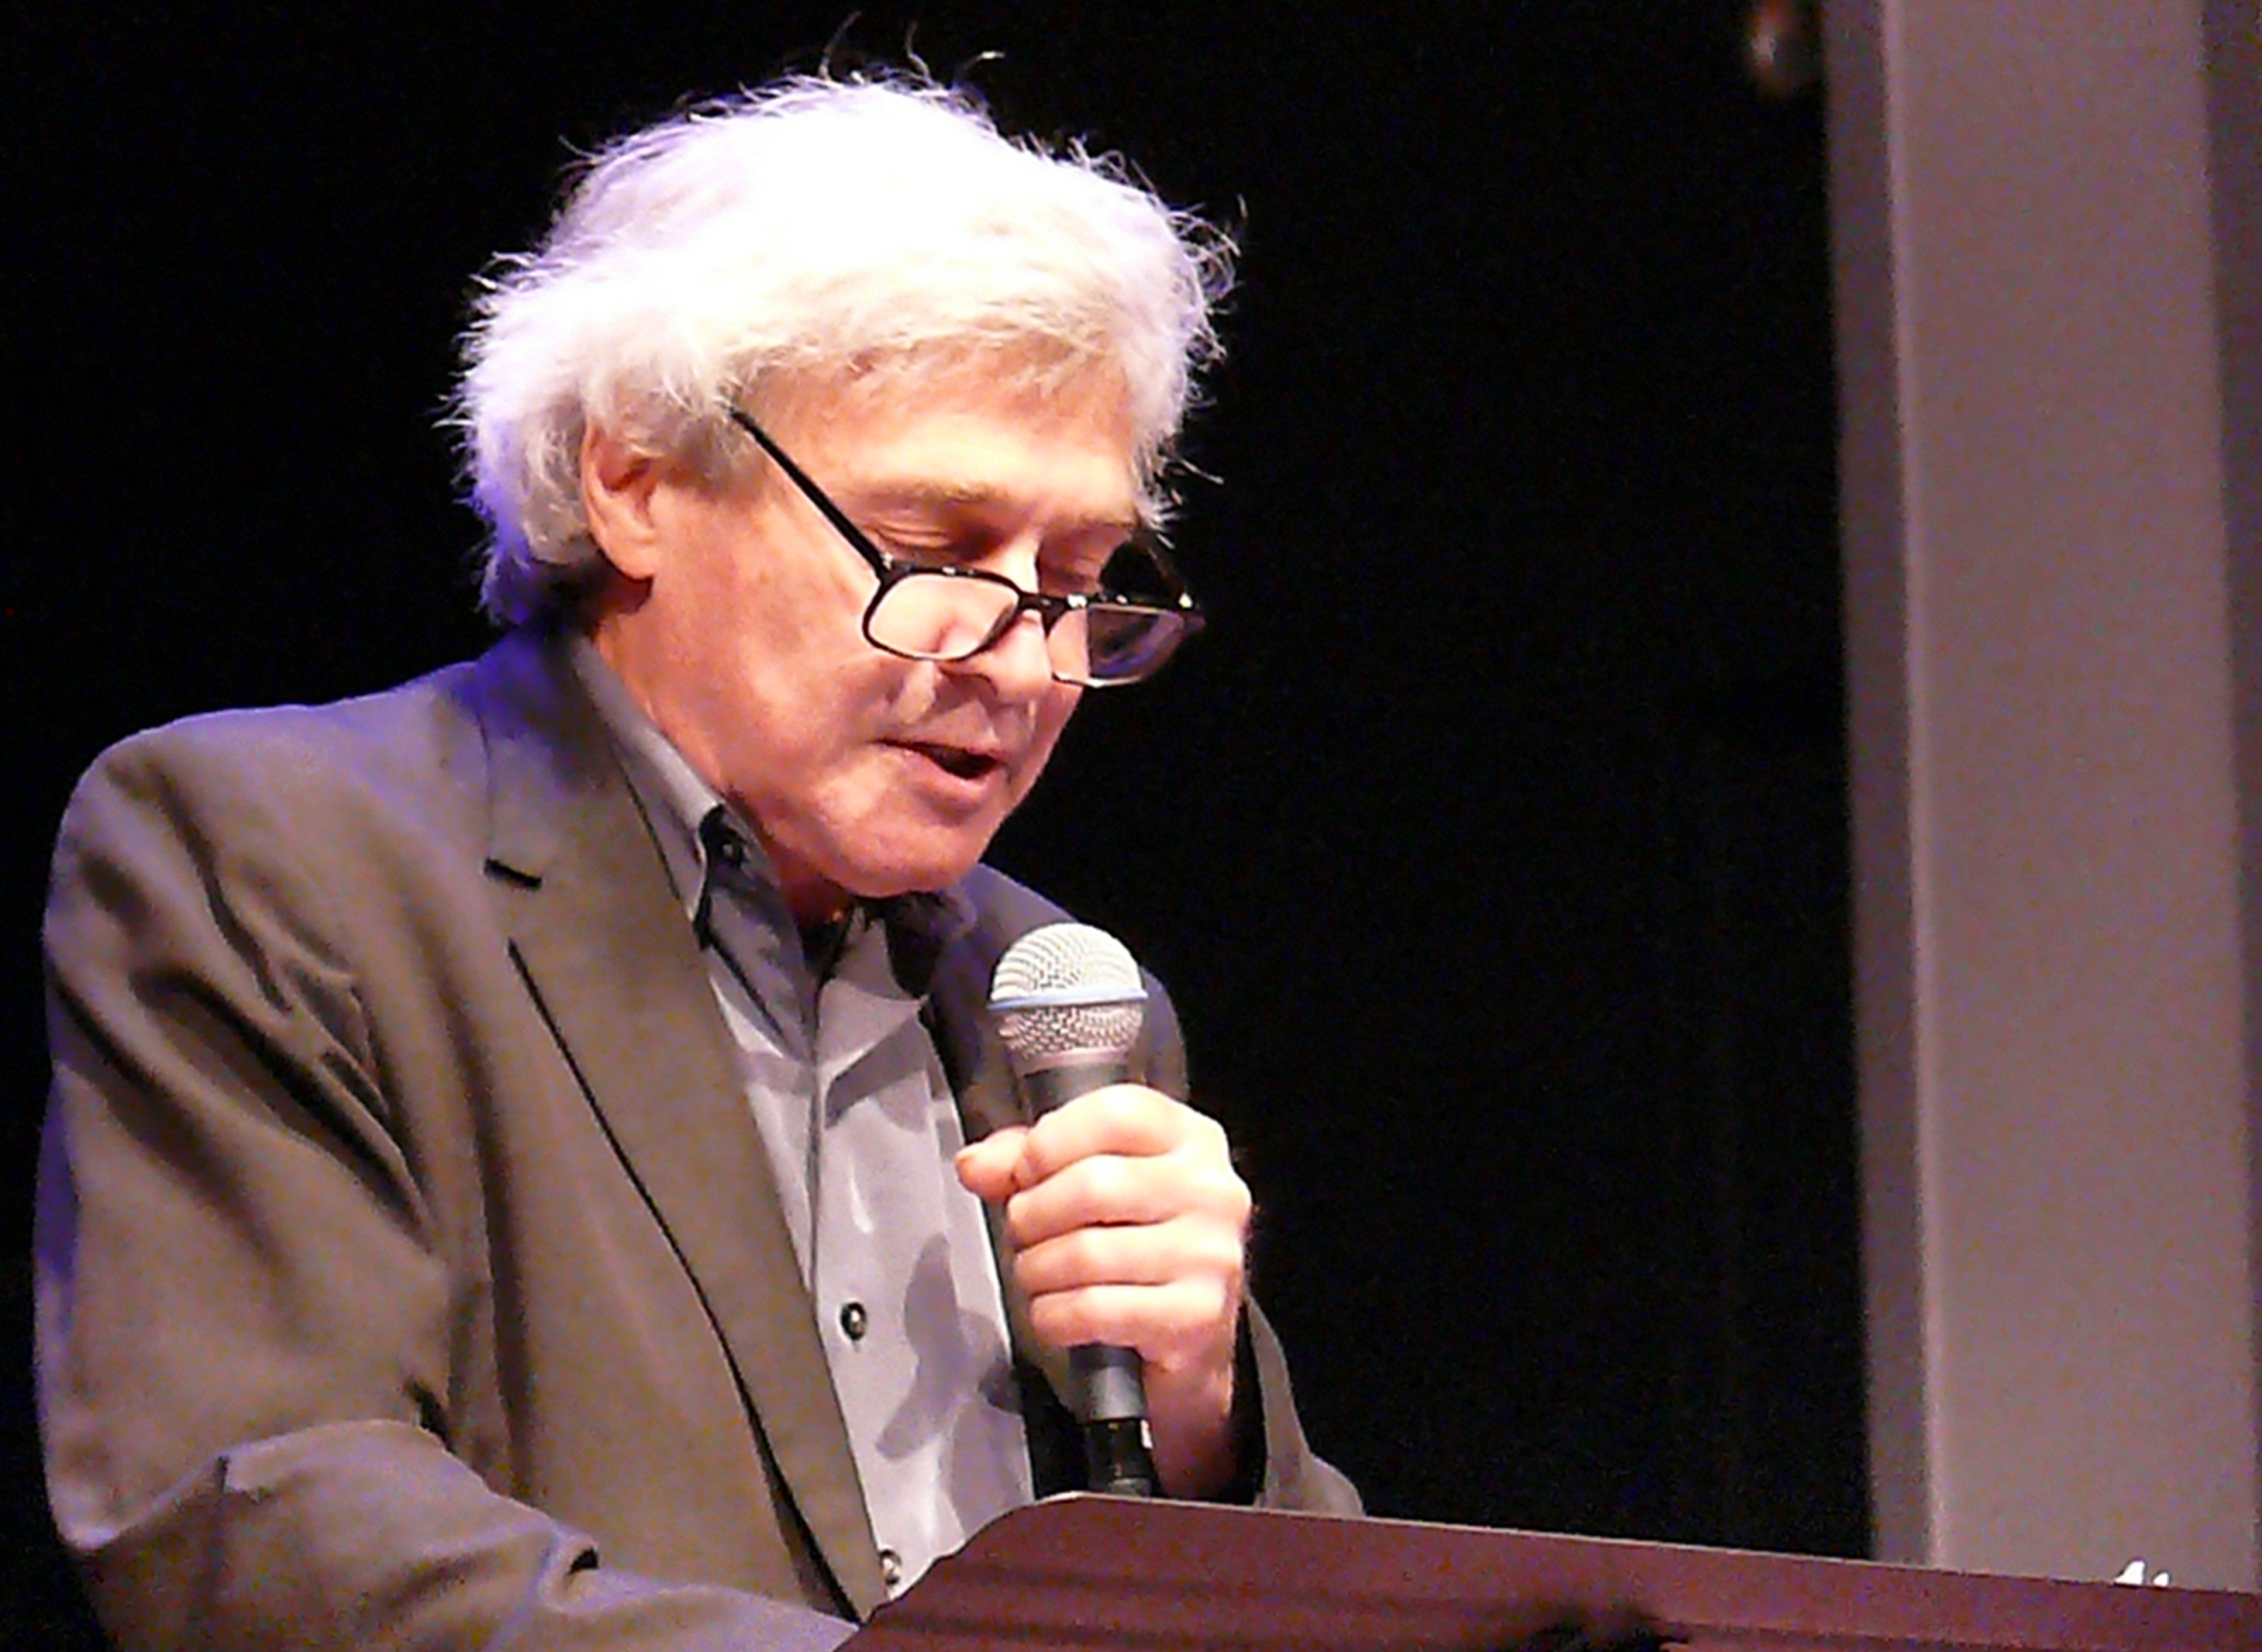 Steve dalachinsky at the vision festival, new york in june 2013